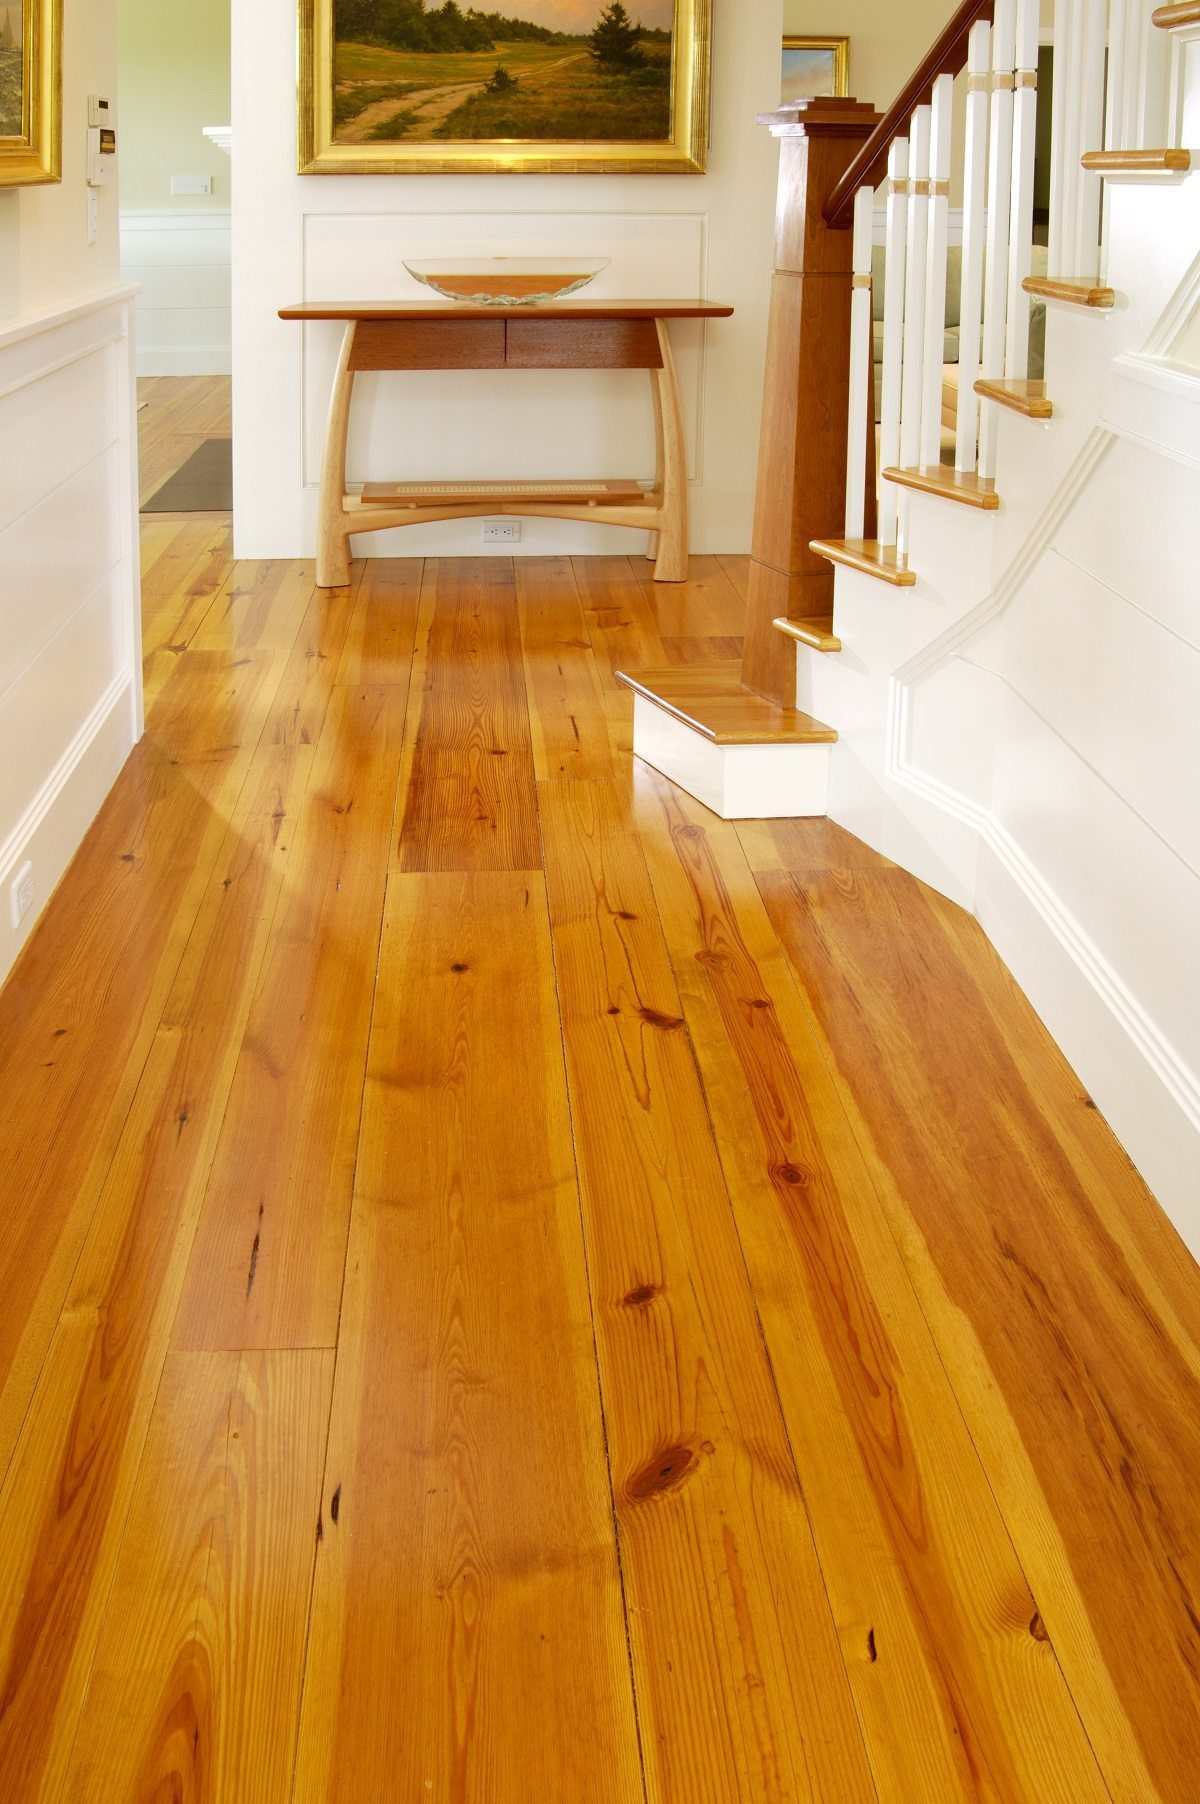 In Pine or Hardwood Floors Wide Planks Are Perfect For